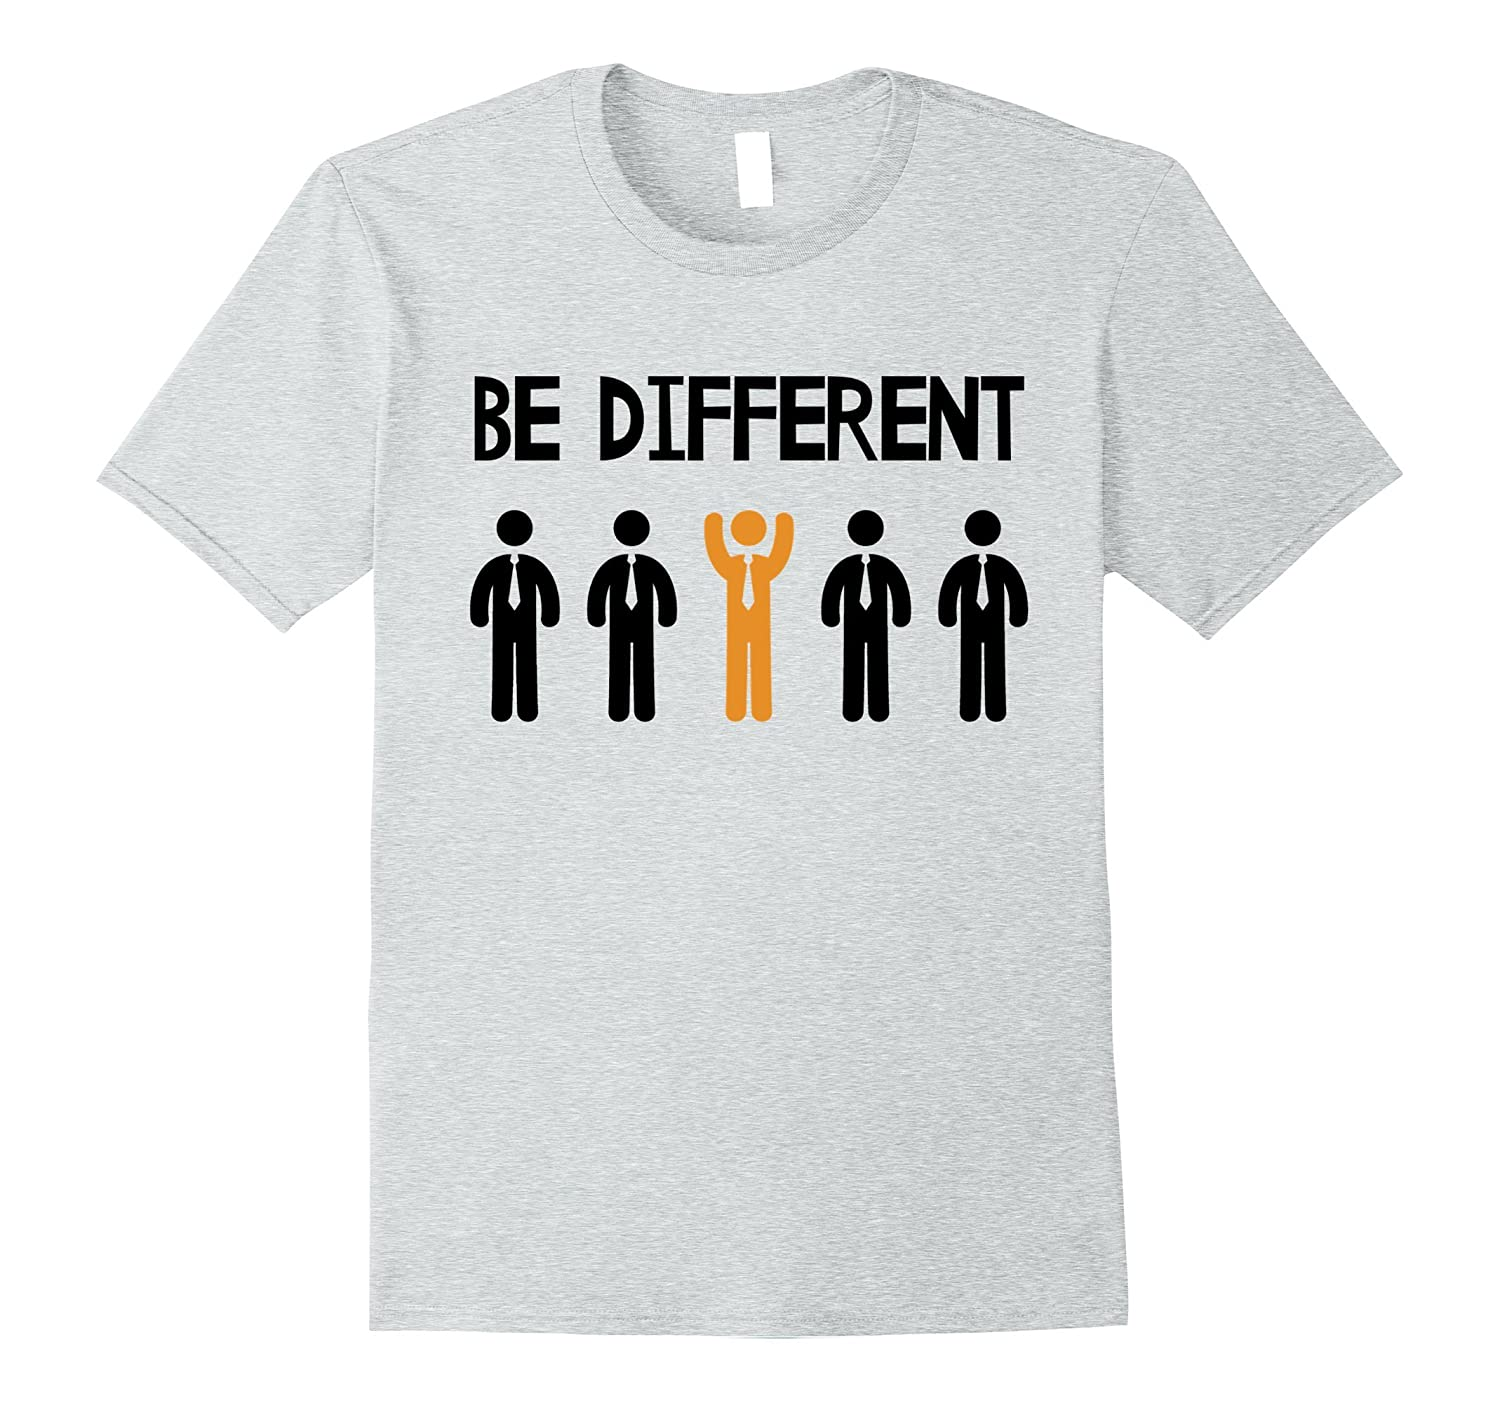 Be Different - Funny Motivational T-Shirt-FL